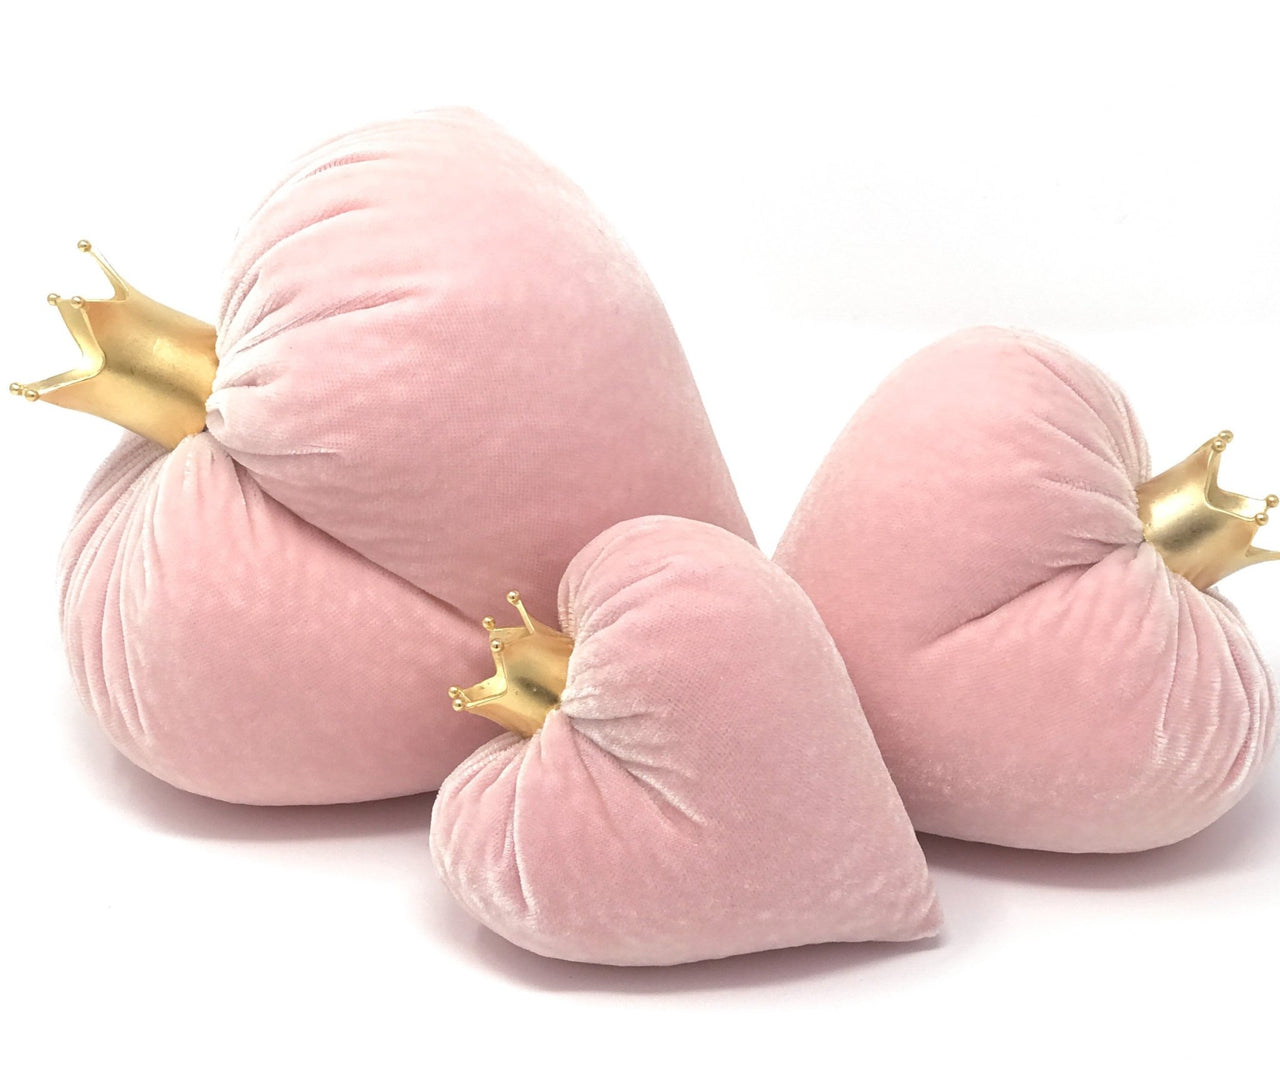 Blush Silk Velvet Hearts with 14k Gold Plate Crowns - Set of 3 - PoppyandPeaches.com - Hot Skwash